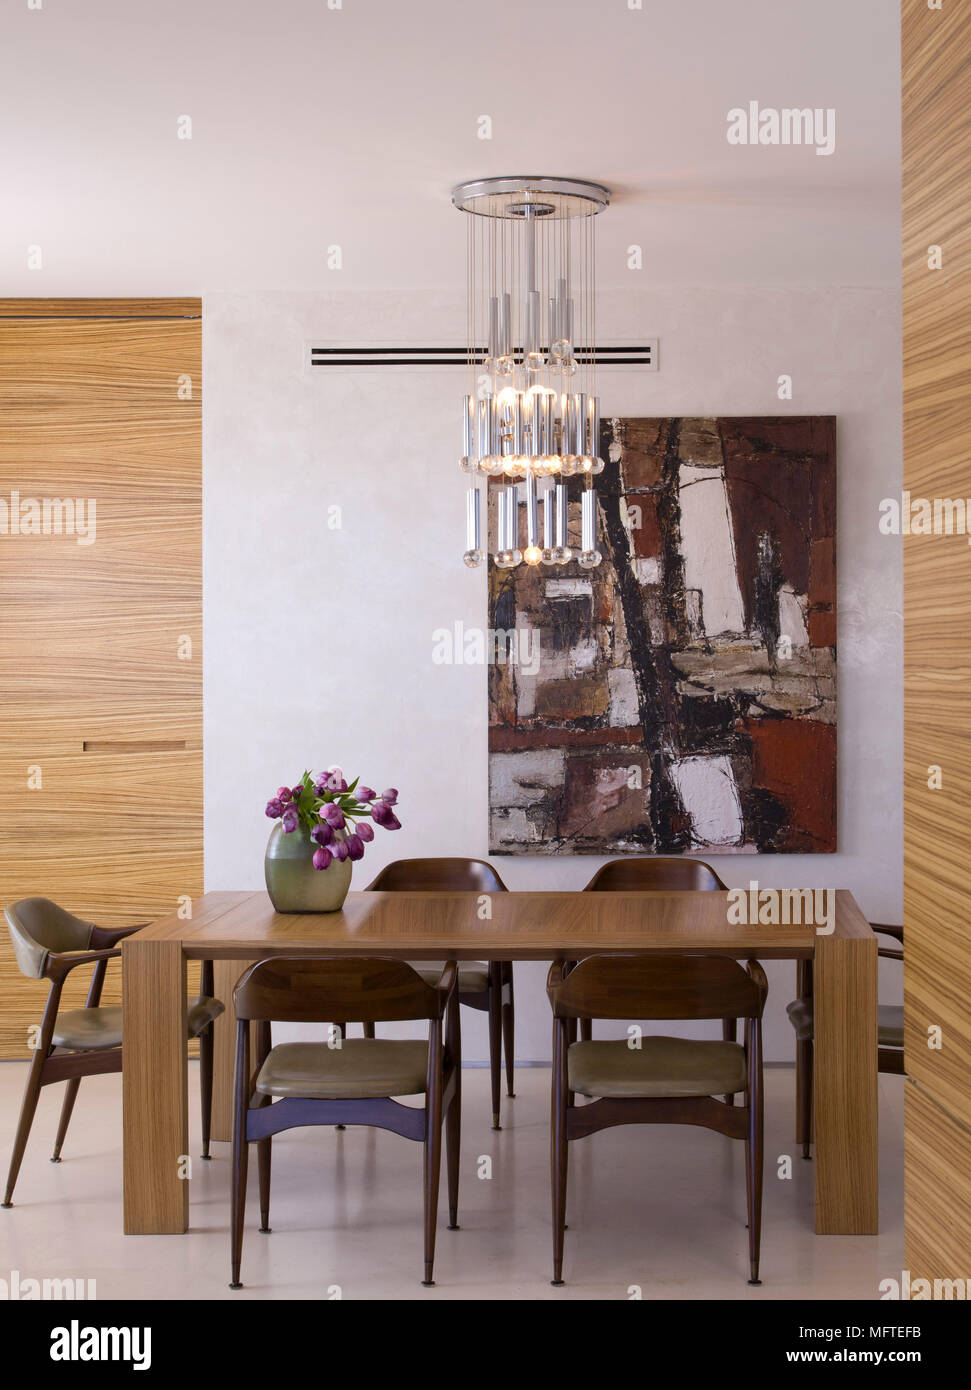 Pendant light above wooden table in modern dining room stock photo